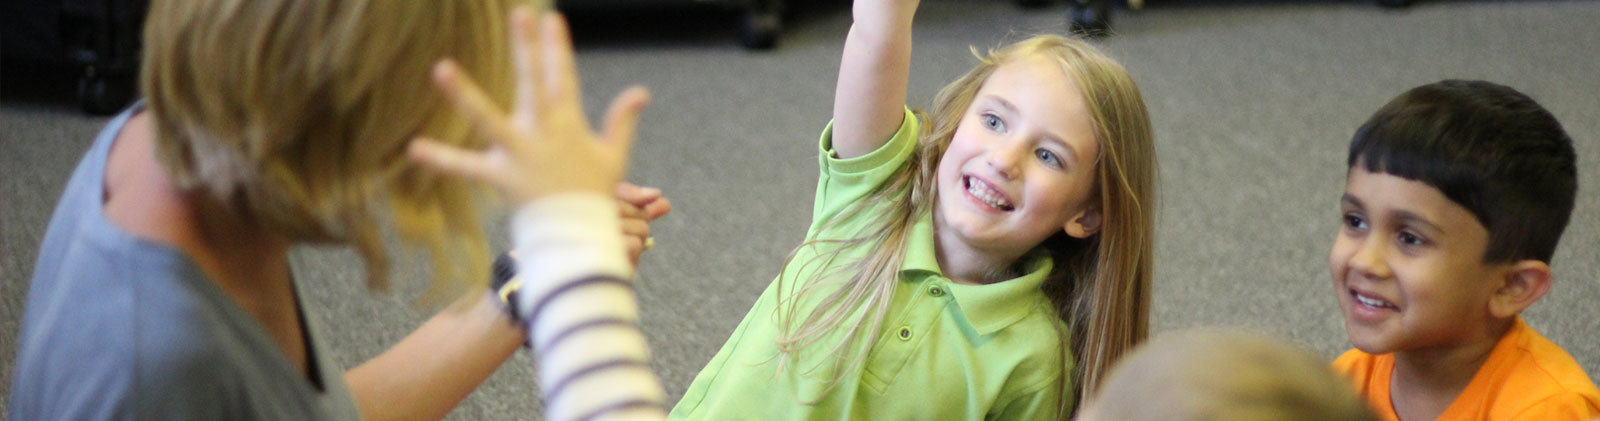 Find Early Childrens Music Classes Near You